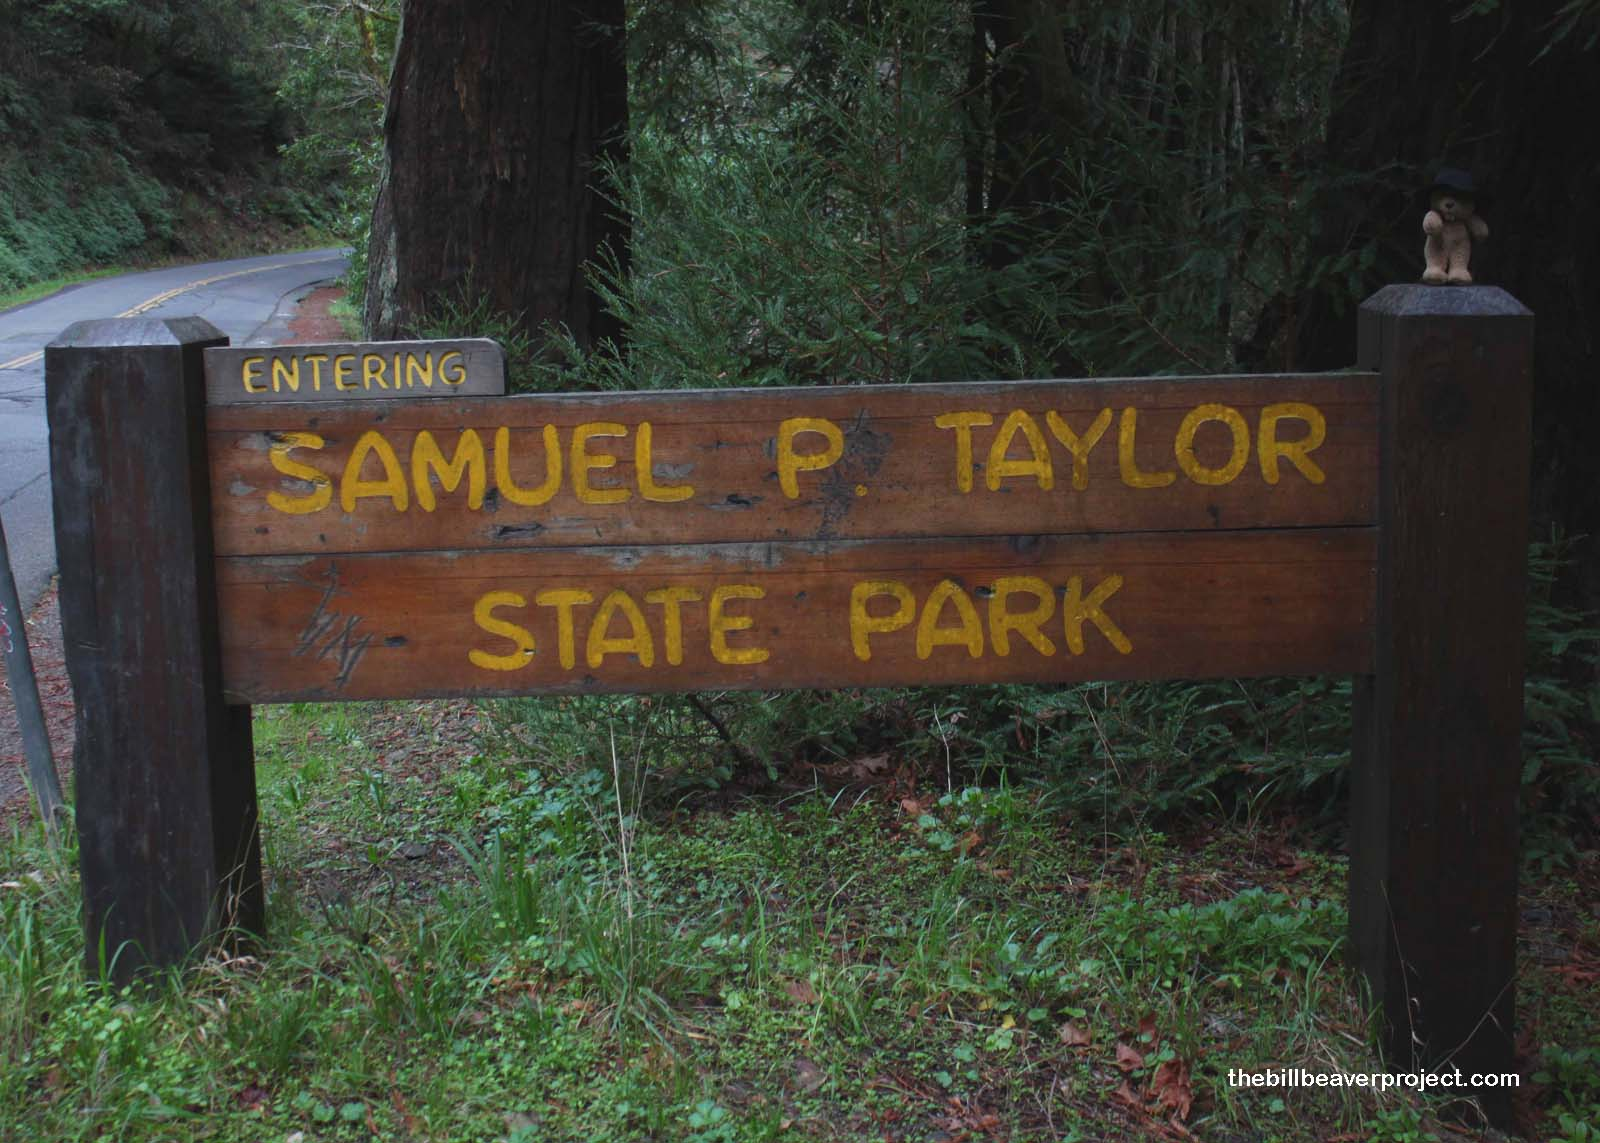 Time Being Of The Essence I Headed Westward To Samuel P Taylor State Park Home Pioneer Paper Mill Where Got Great News From My Friend